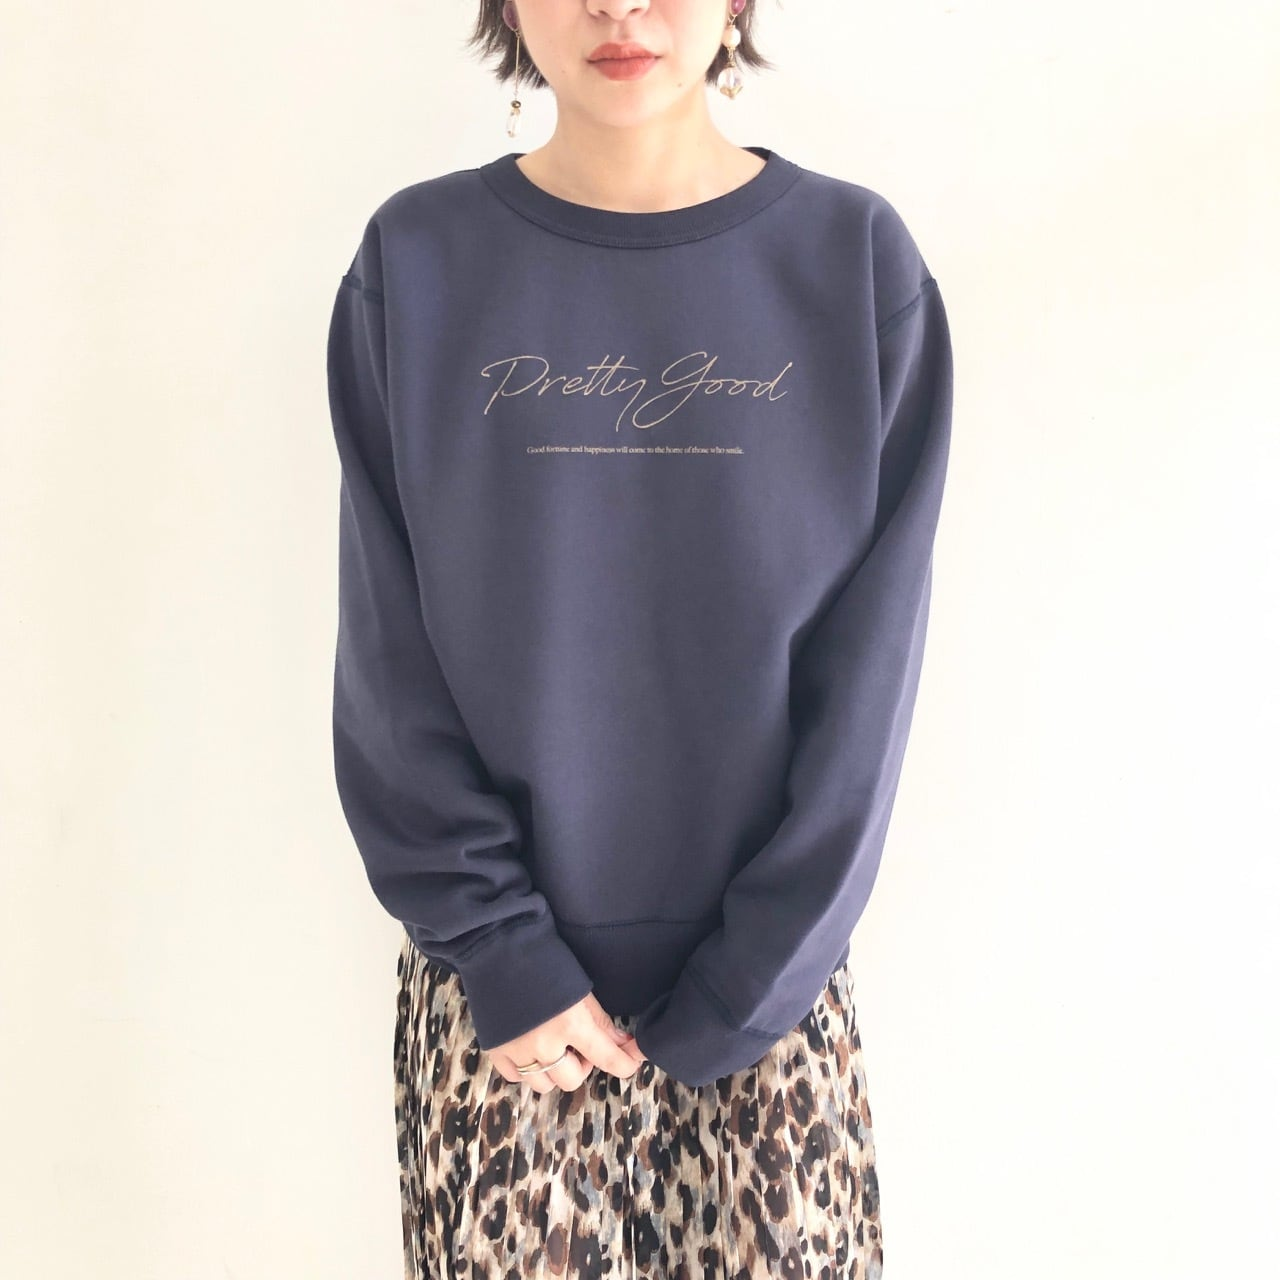 【 for the people 】- 193-009018 - Heavy duty sweatトレーナー